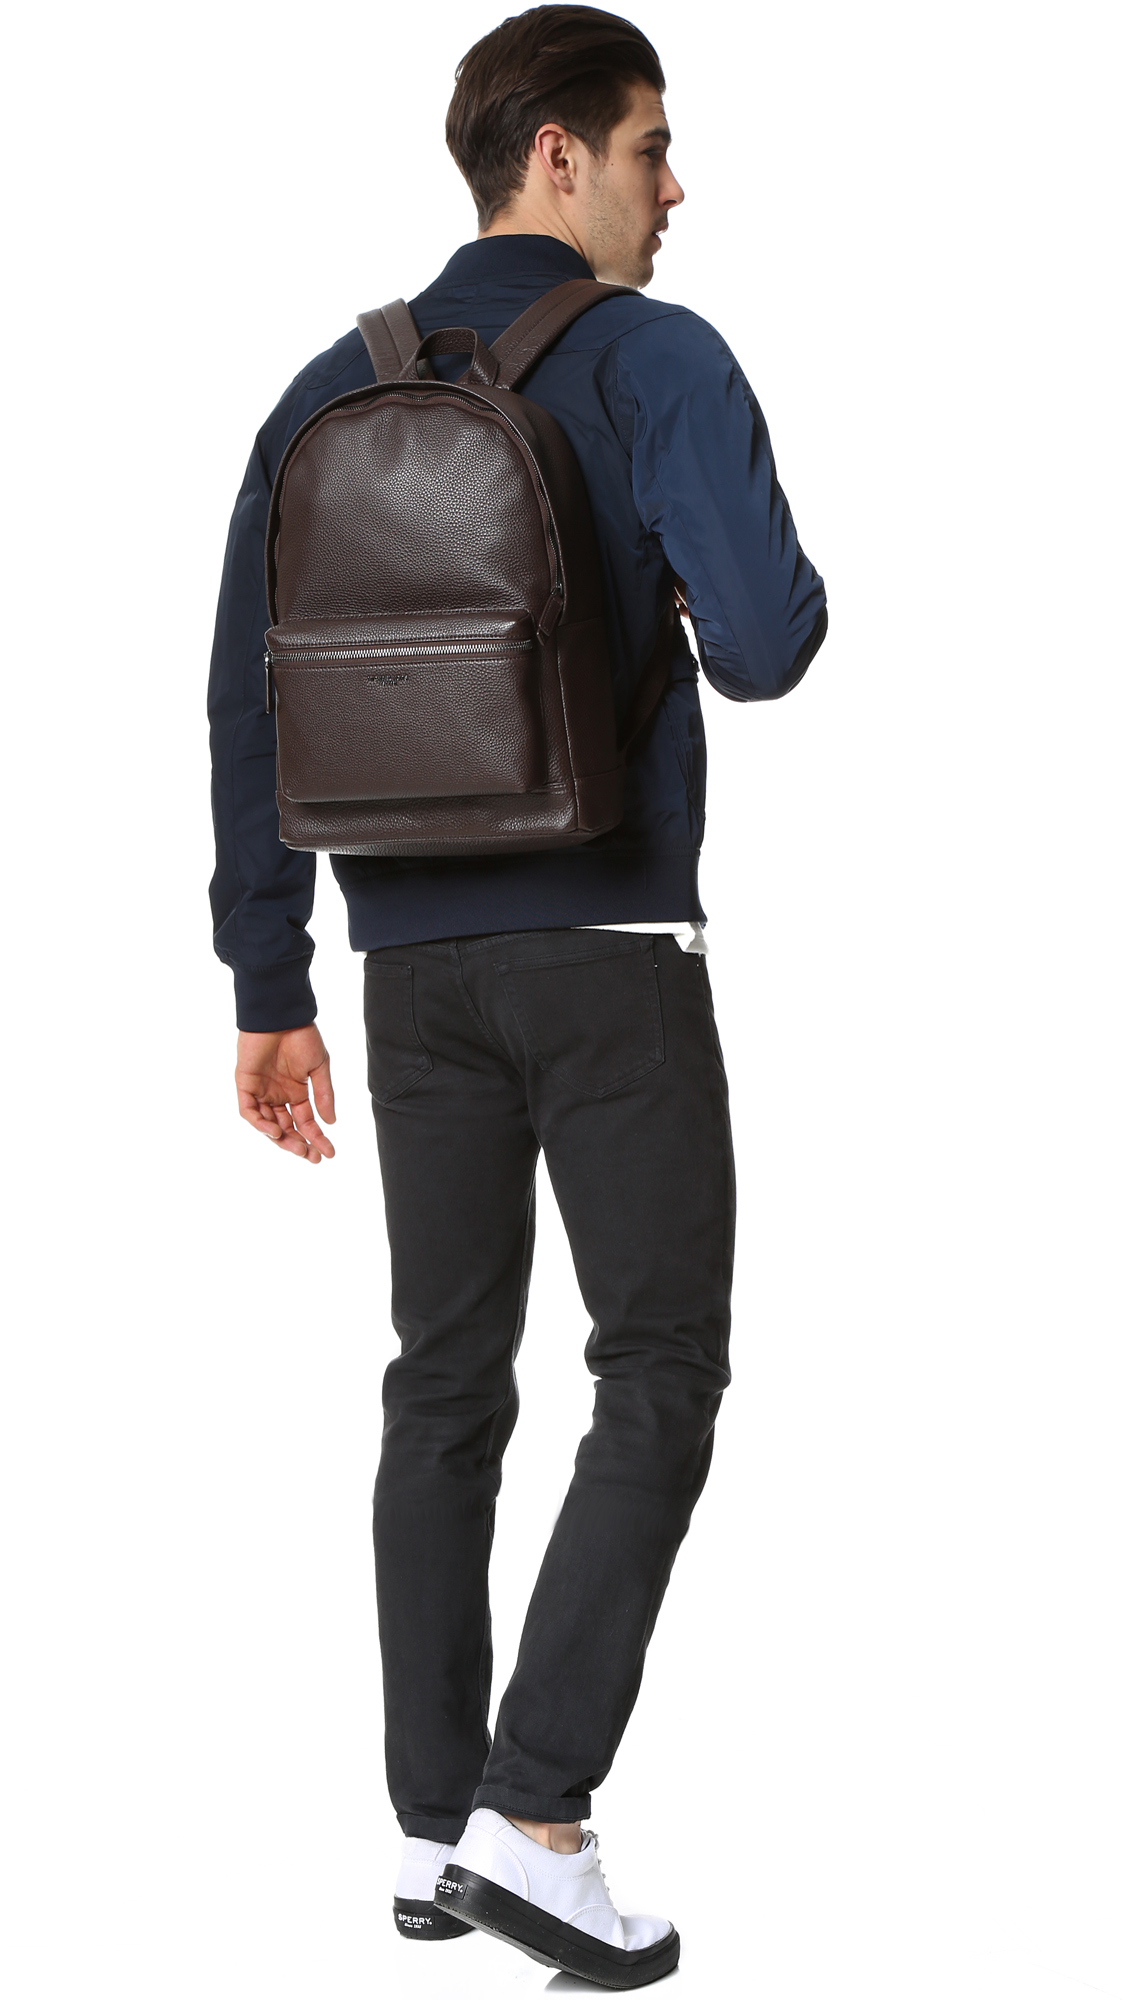 e3d2788cf4cd Michael Kors Bryant Pebbled Leather Backpack in Brown for Men - Lyst